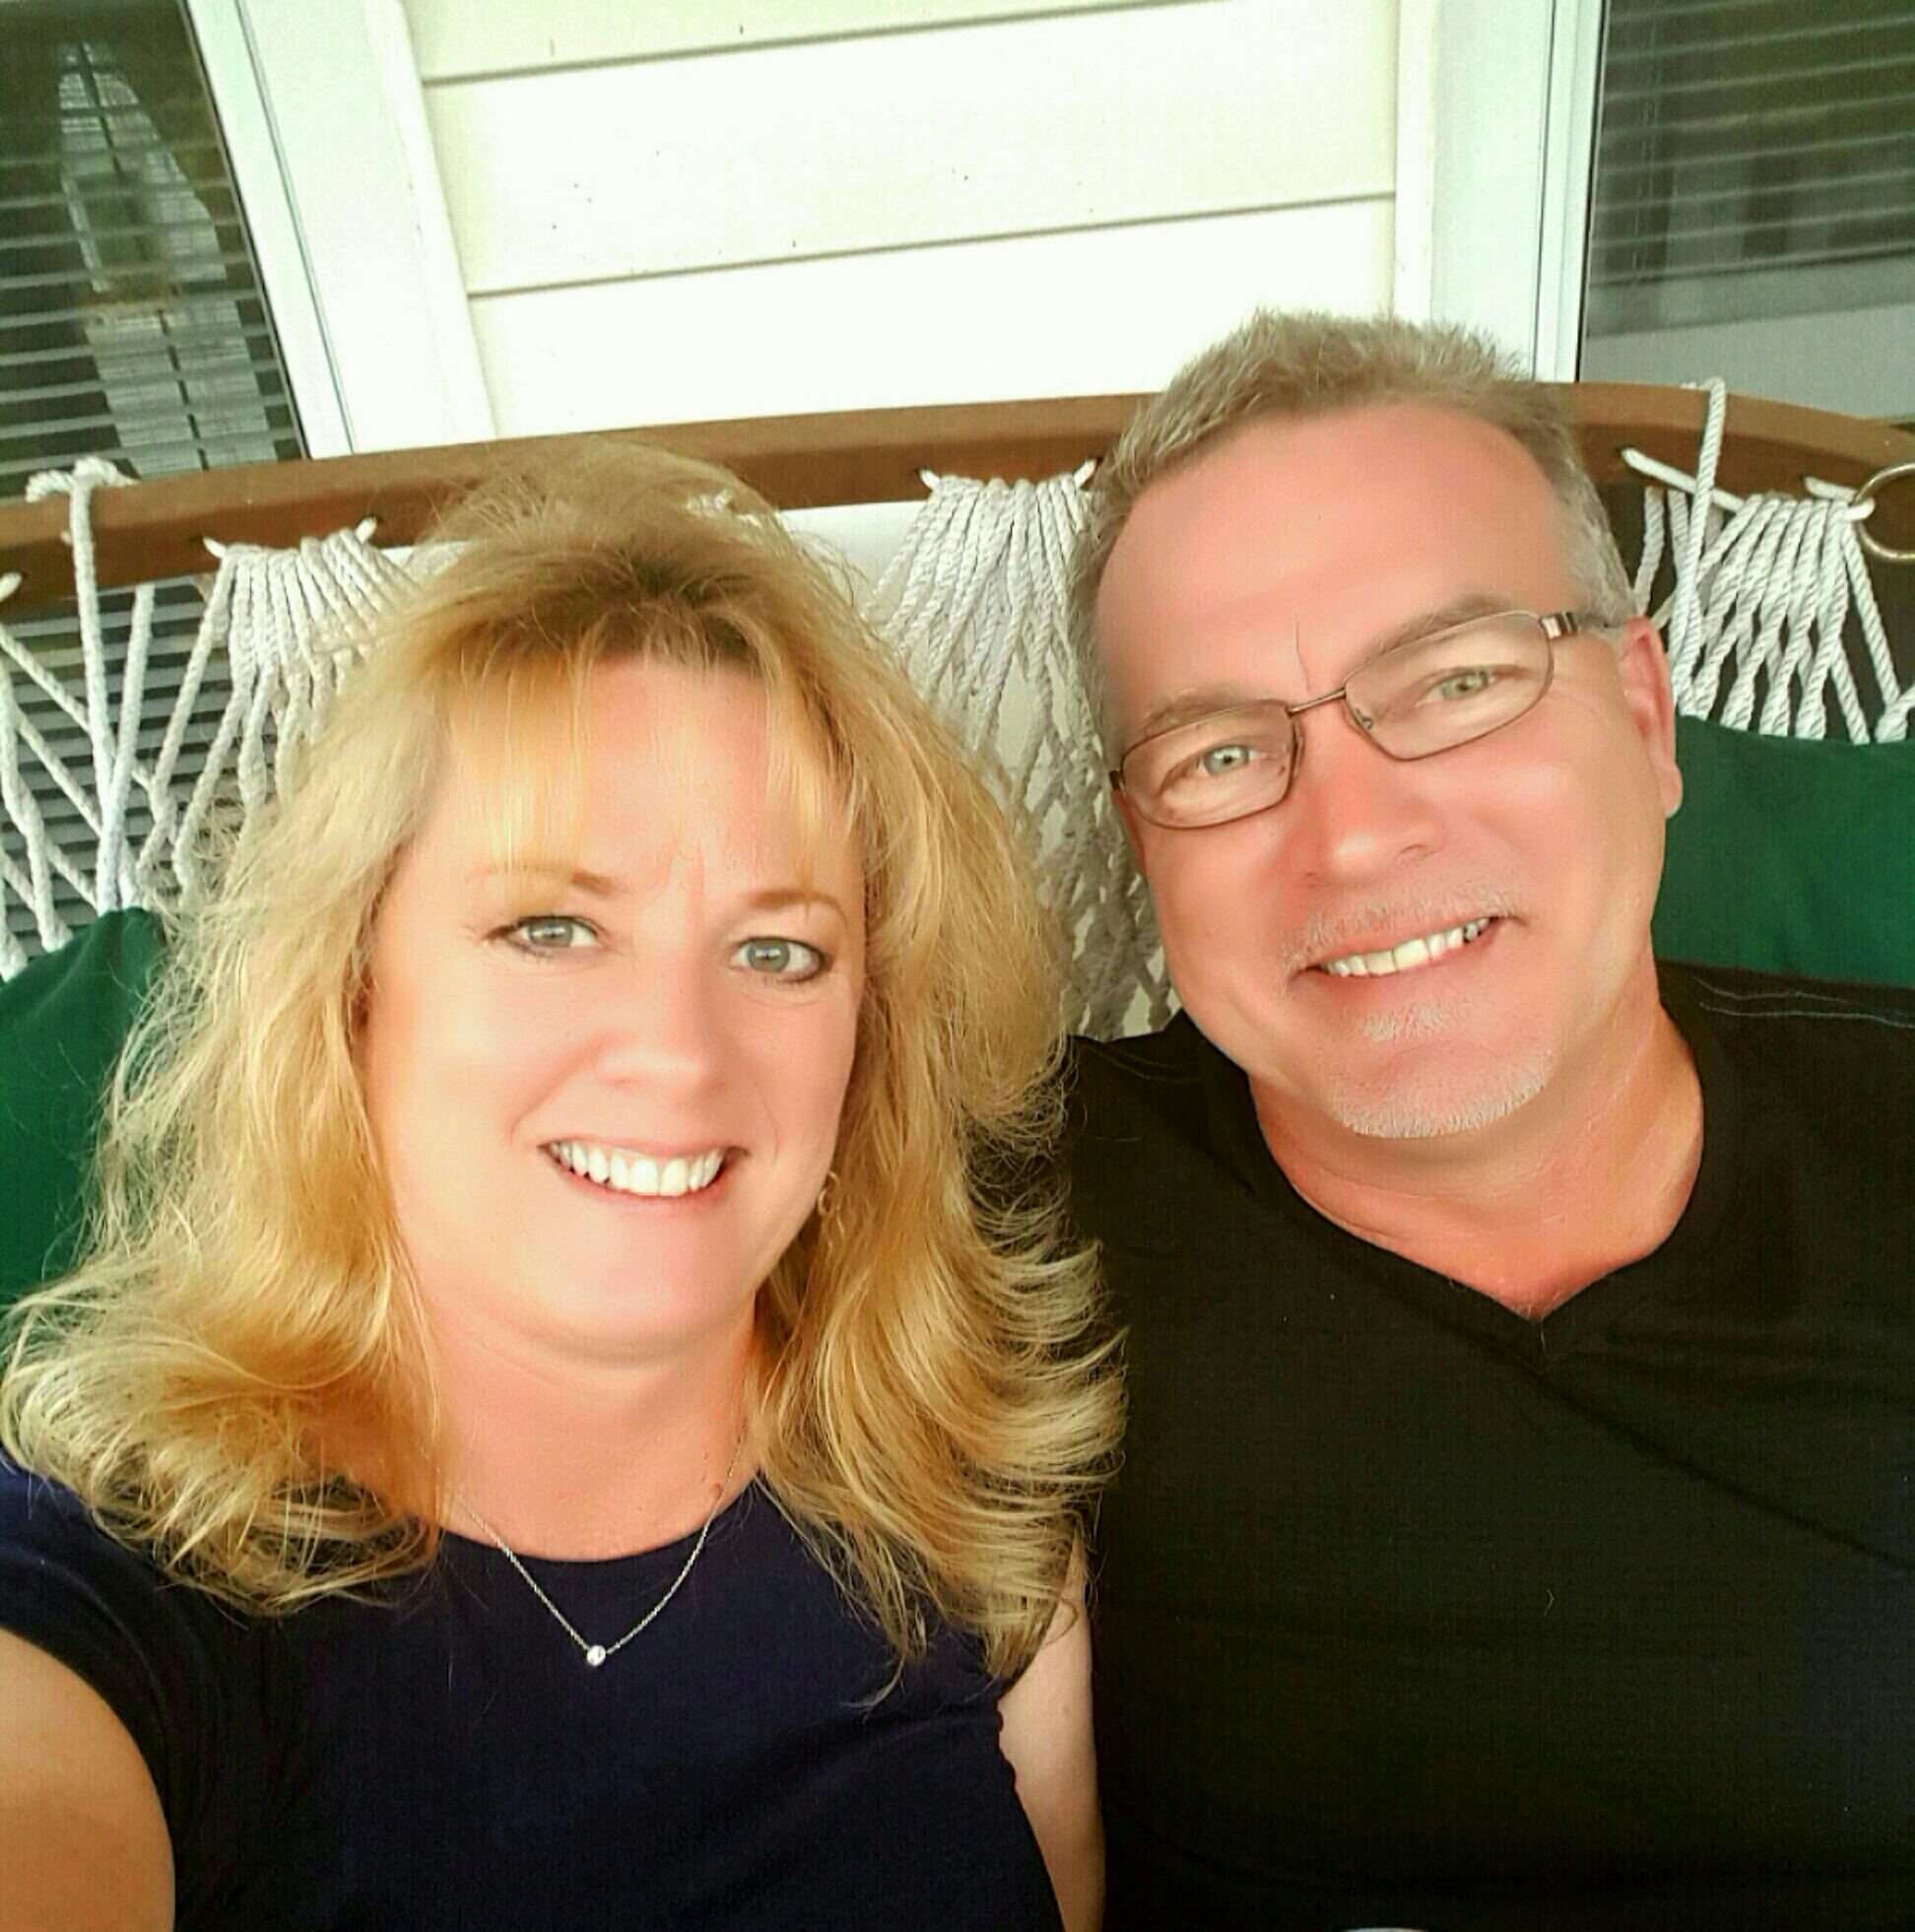 Vermont Home Check Professional Home Inspection Jeff and Angel Vos